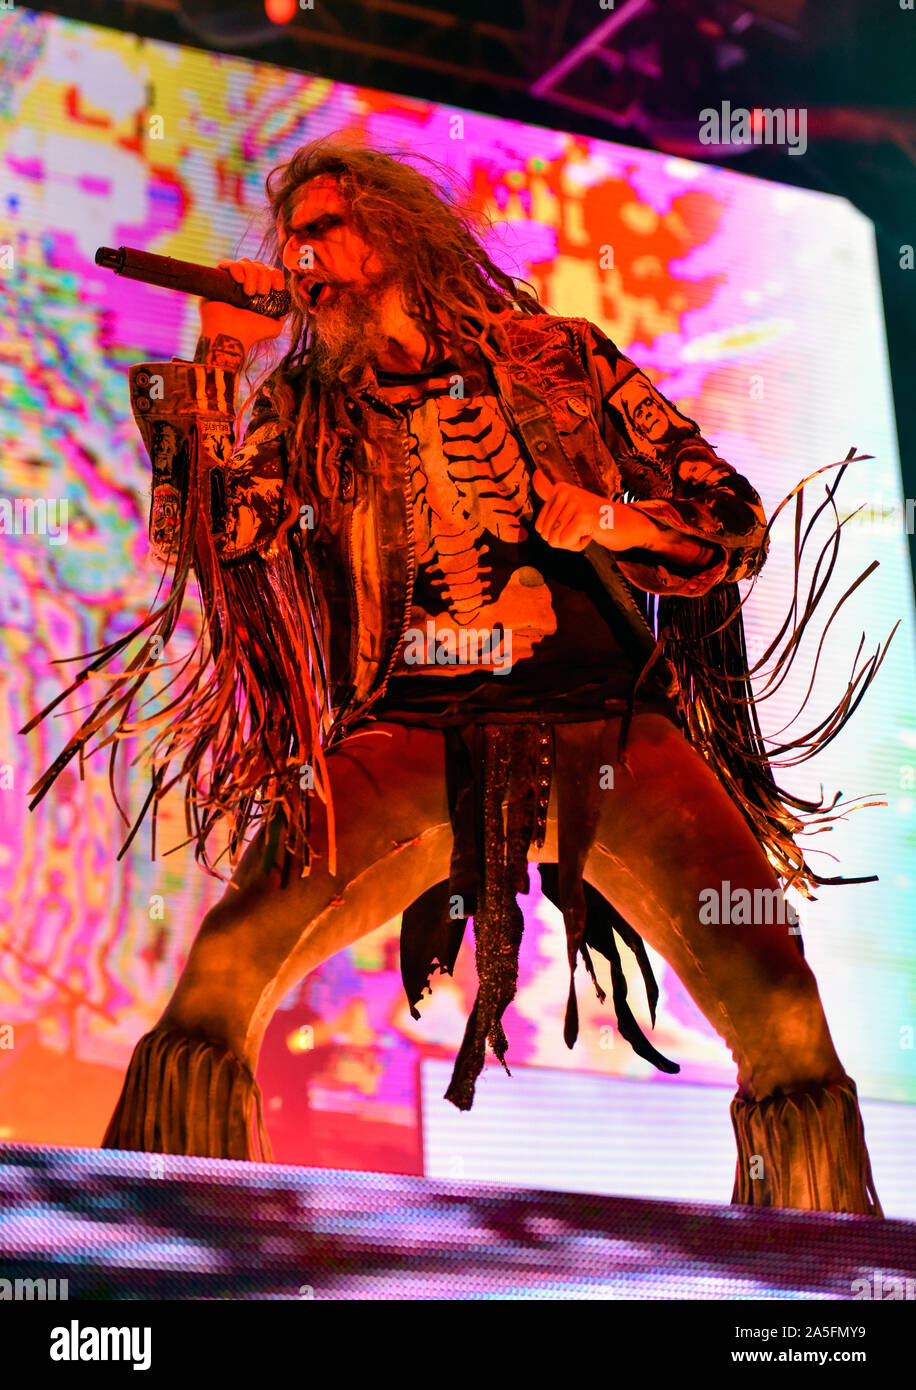 Las Vegas, Nevada, USA. October 19, 2019. Rob Zombie performing in concert at the third annual Las Rageous heavy metal music festival held at the Downtown Las Vegas Events Center. Photo Credit: Ken Howard Images Credit: Ken Howard/Alamy Live News Stock Photo